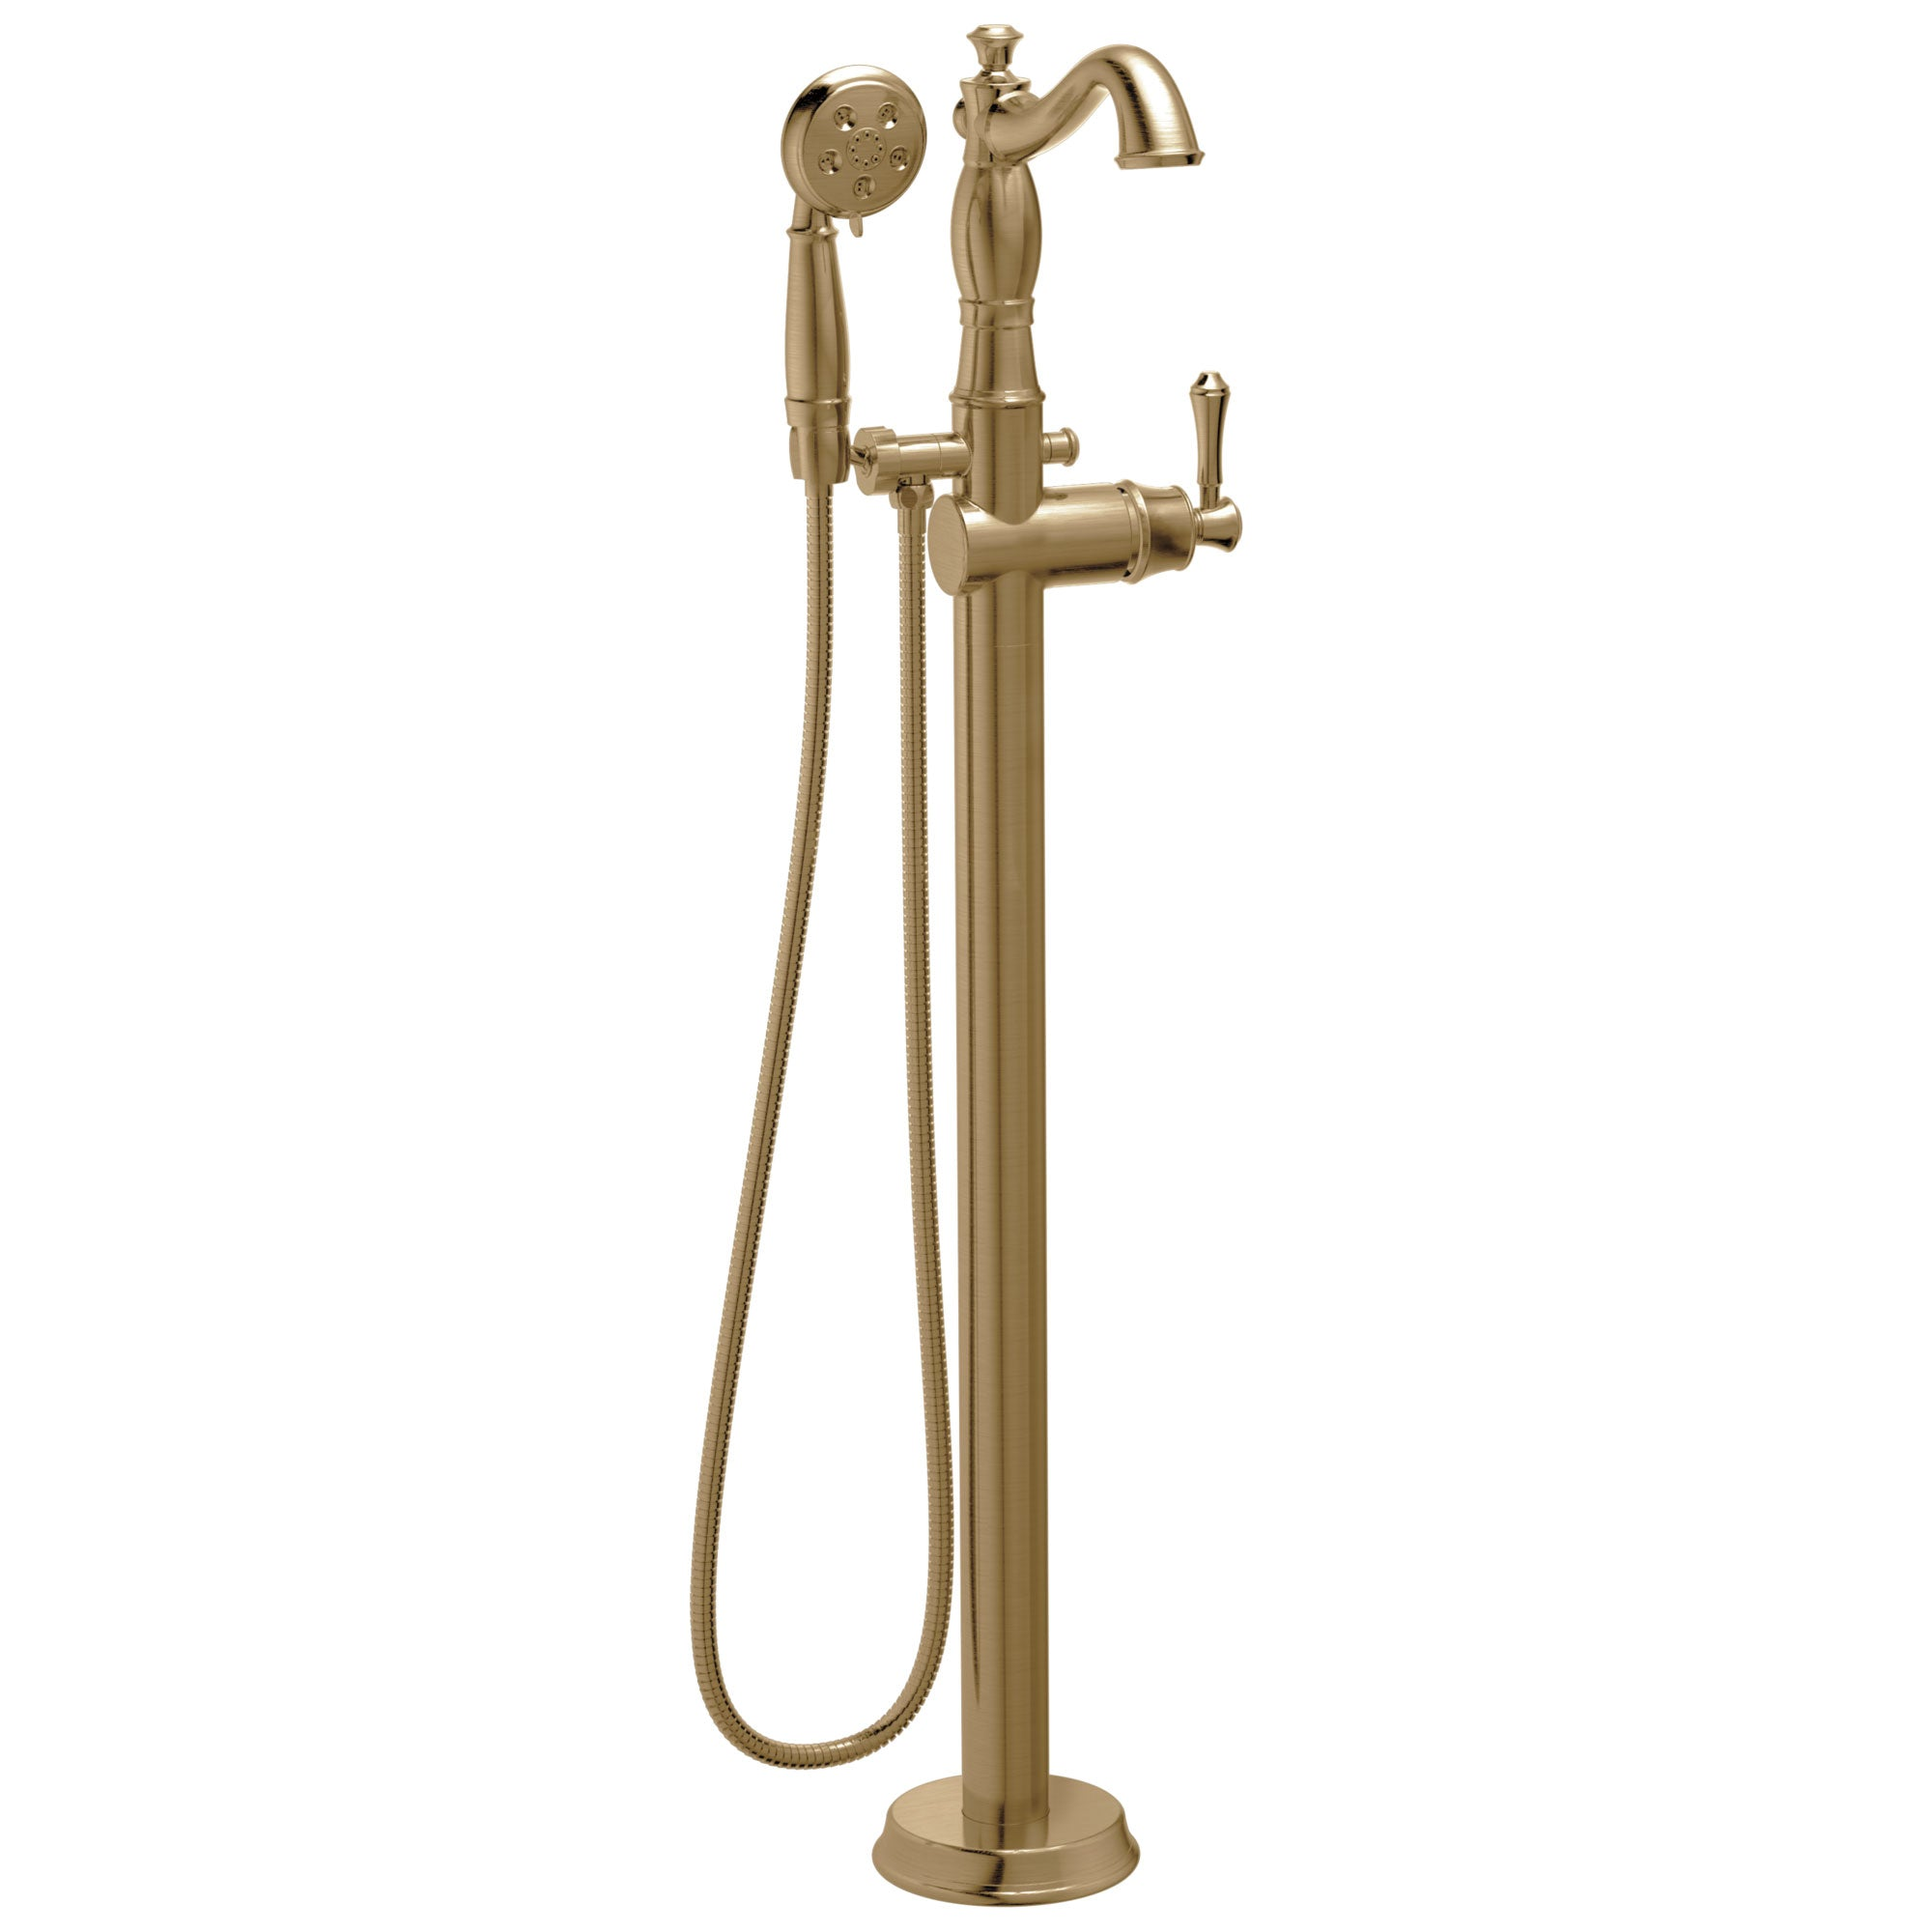 Delta Cassidy Freestanding Floor-Mount Tub Filler Faucet with Sprayer in Champagne Bronze INCLUDES Single Lever Handle and Rough-in Valve D2570V